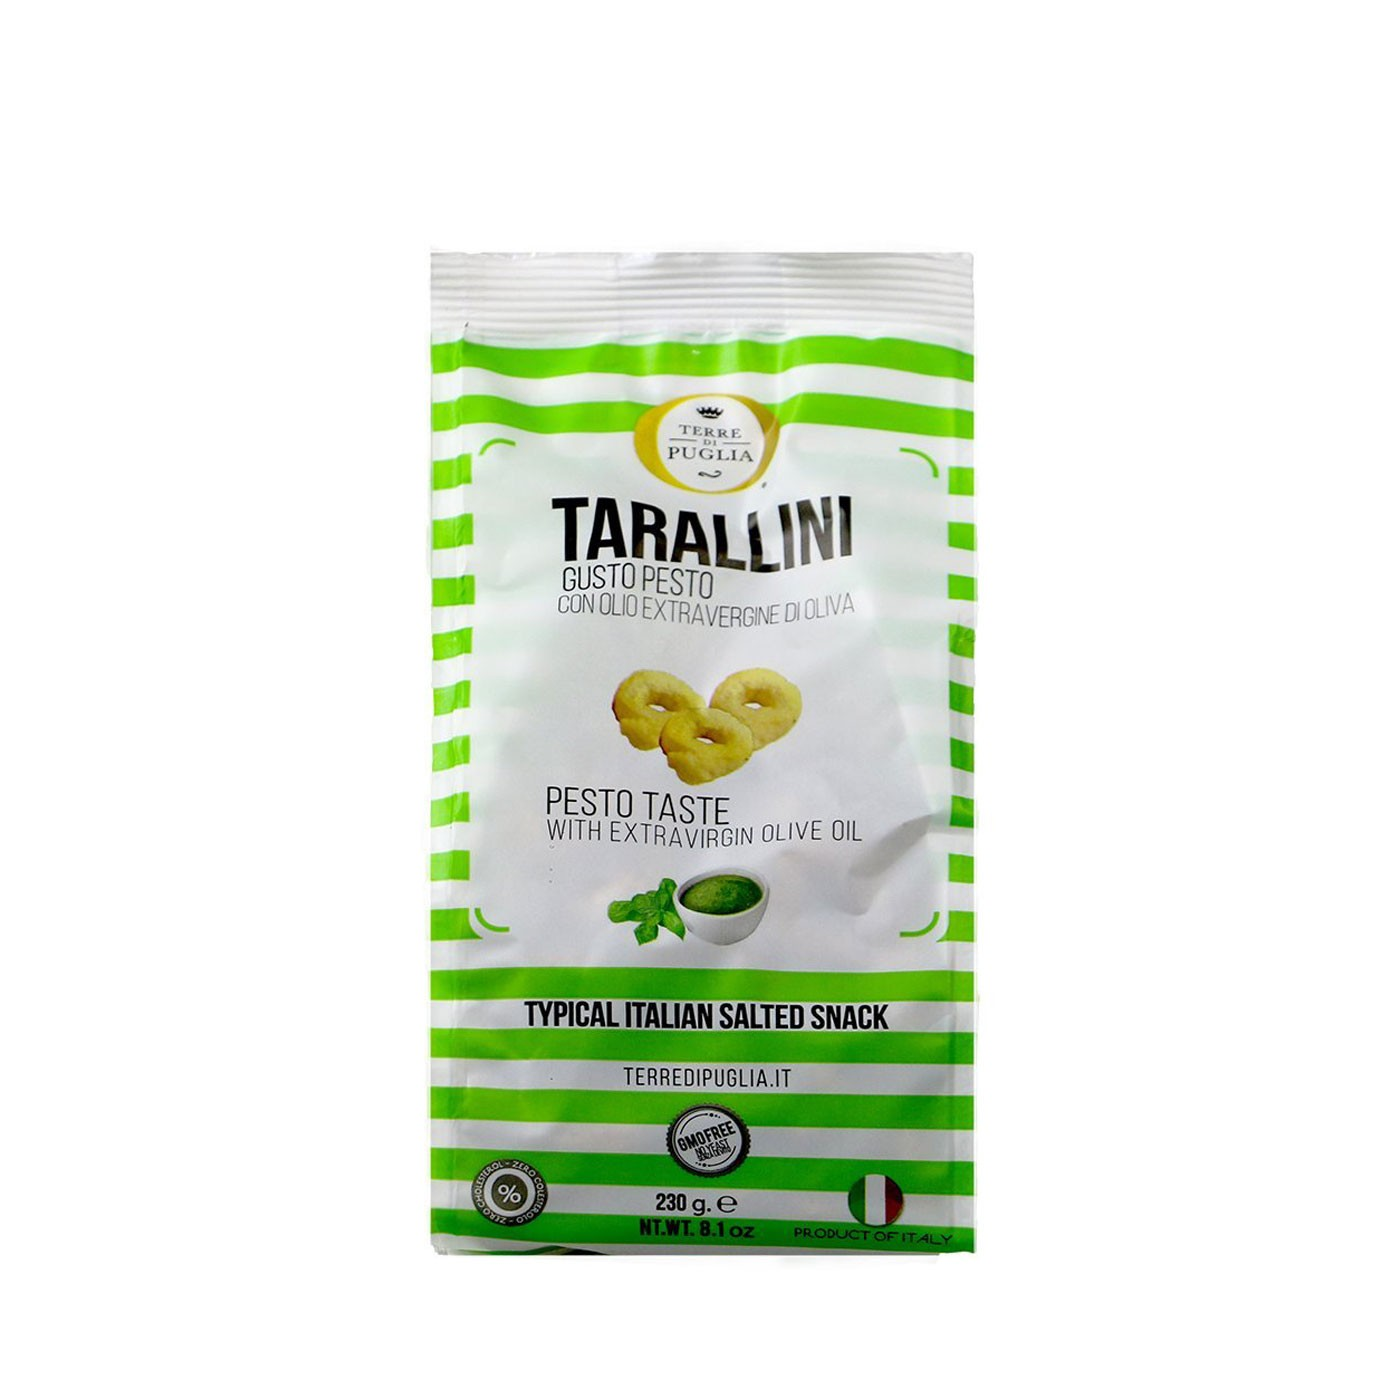 Pesto Tarallini Crackers 8.1oz